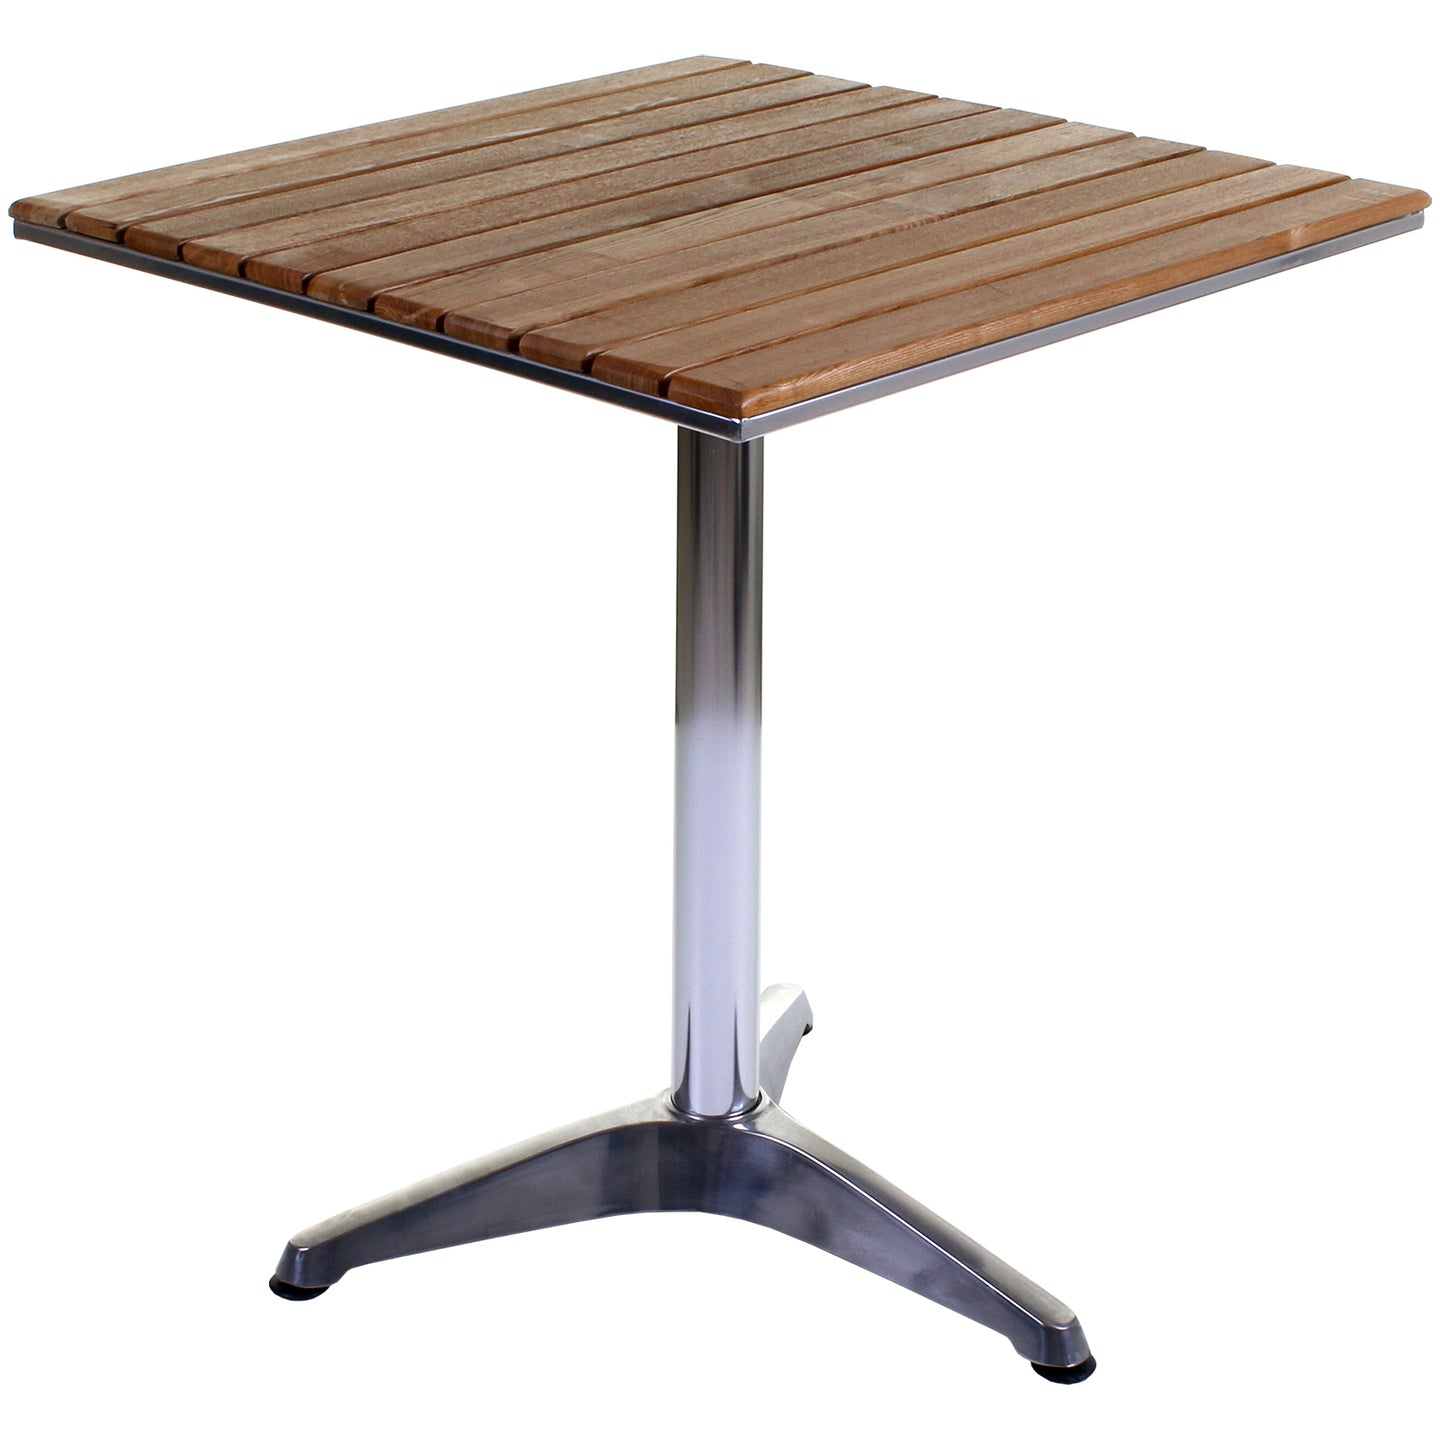 San Juan Bistro Table - Chrome & Ash Wood